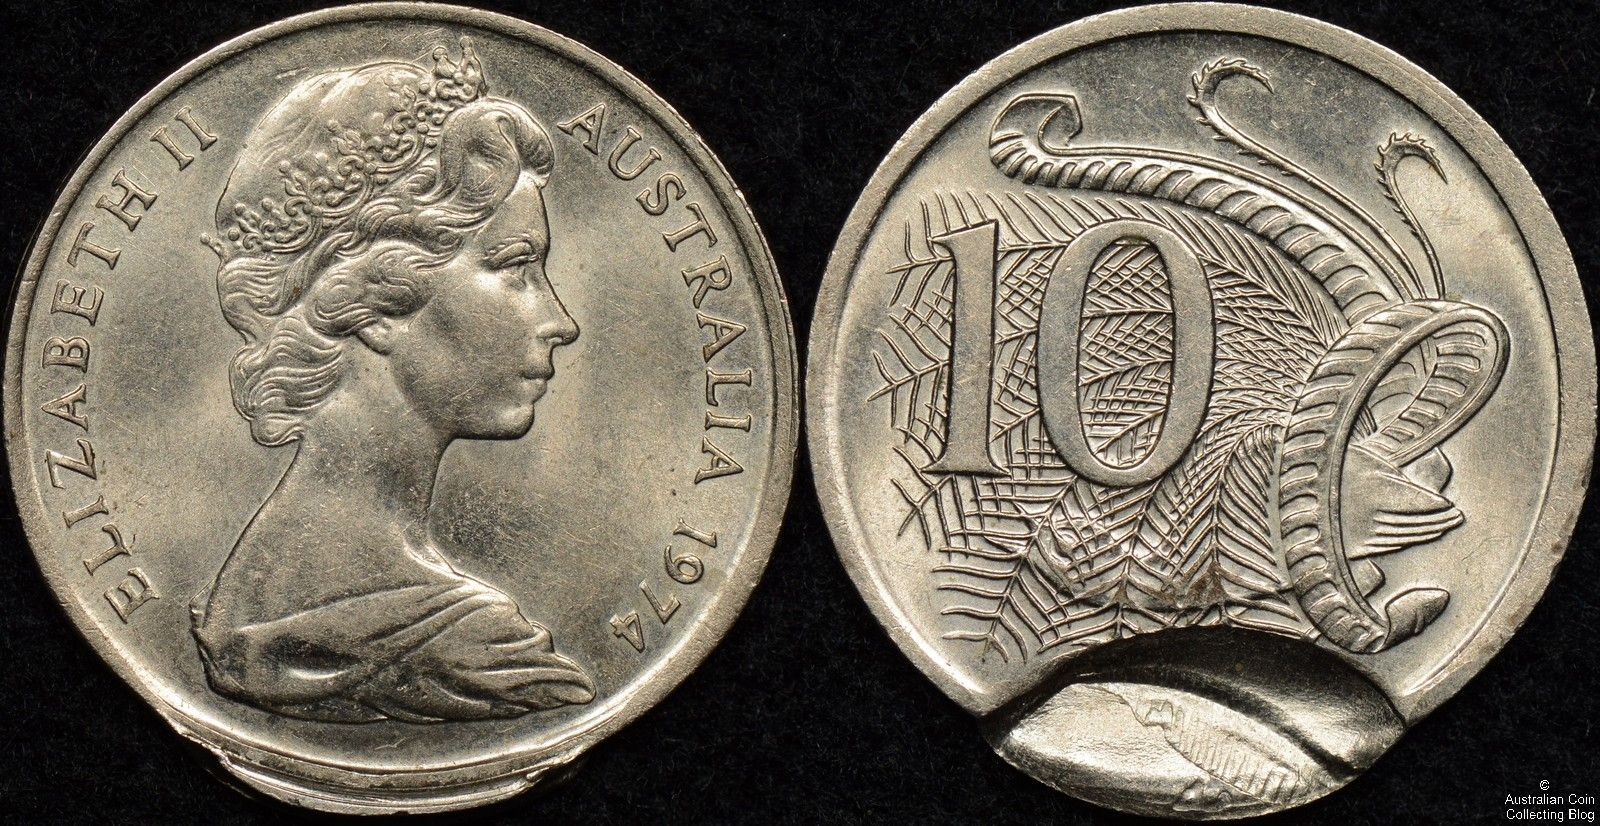 Australia 1974 10 cent coin indent and partial brockage